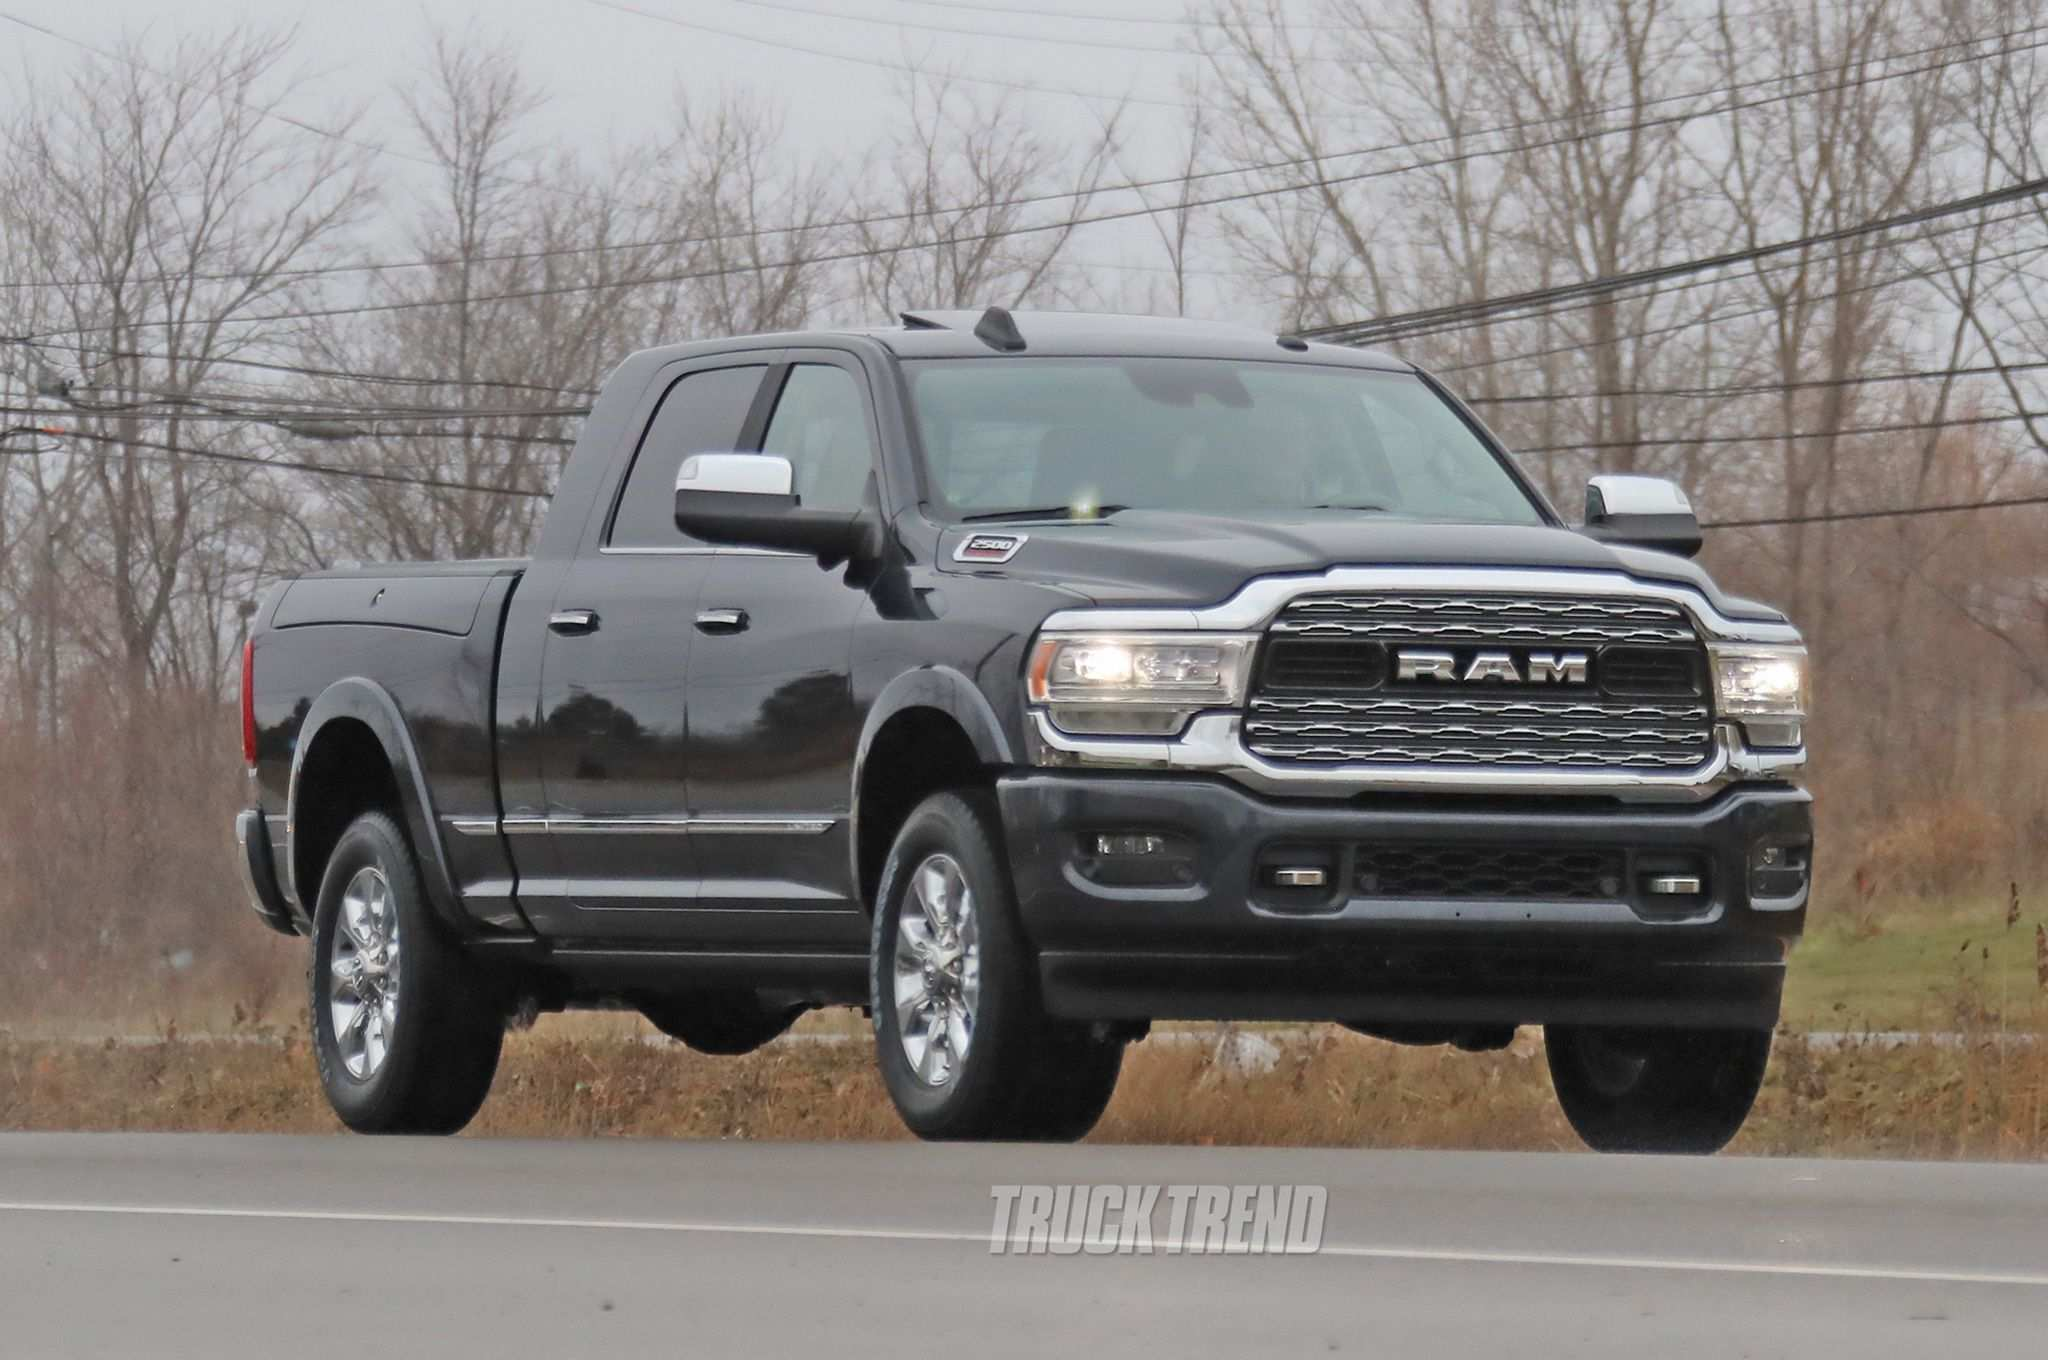 33 Concept of 2020 Dodge Ram 3500 Mega Cab Specs and Review by 2020 Dodge Ram 3500 Mega Cab